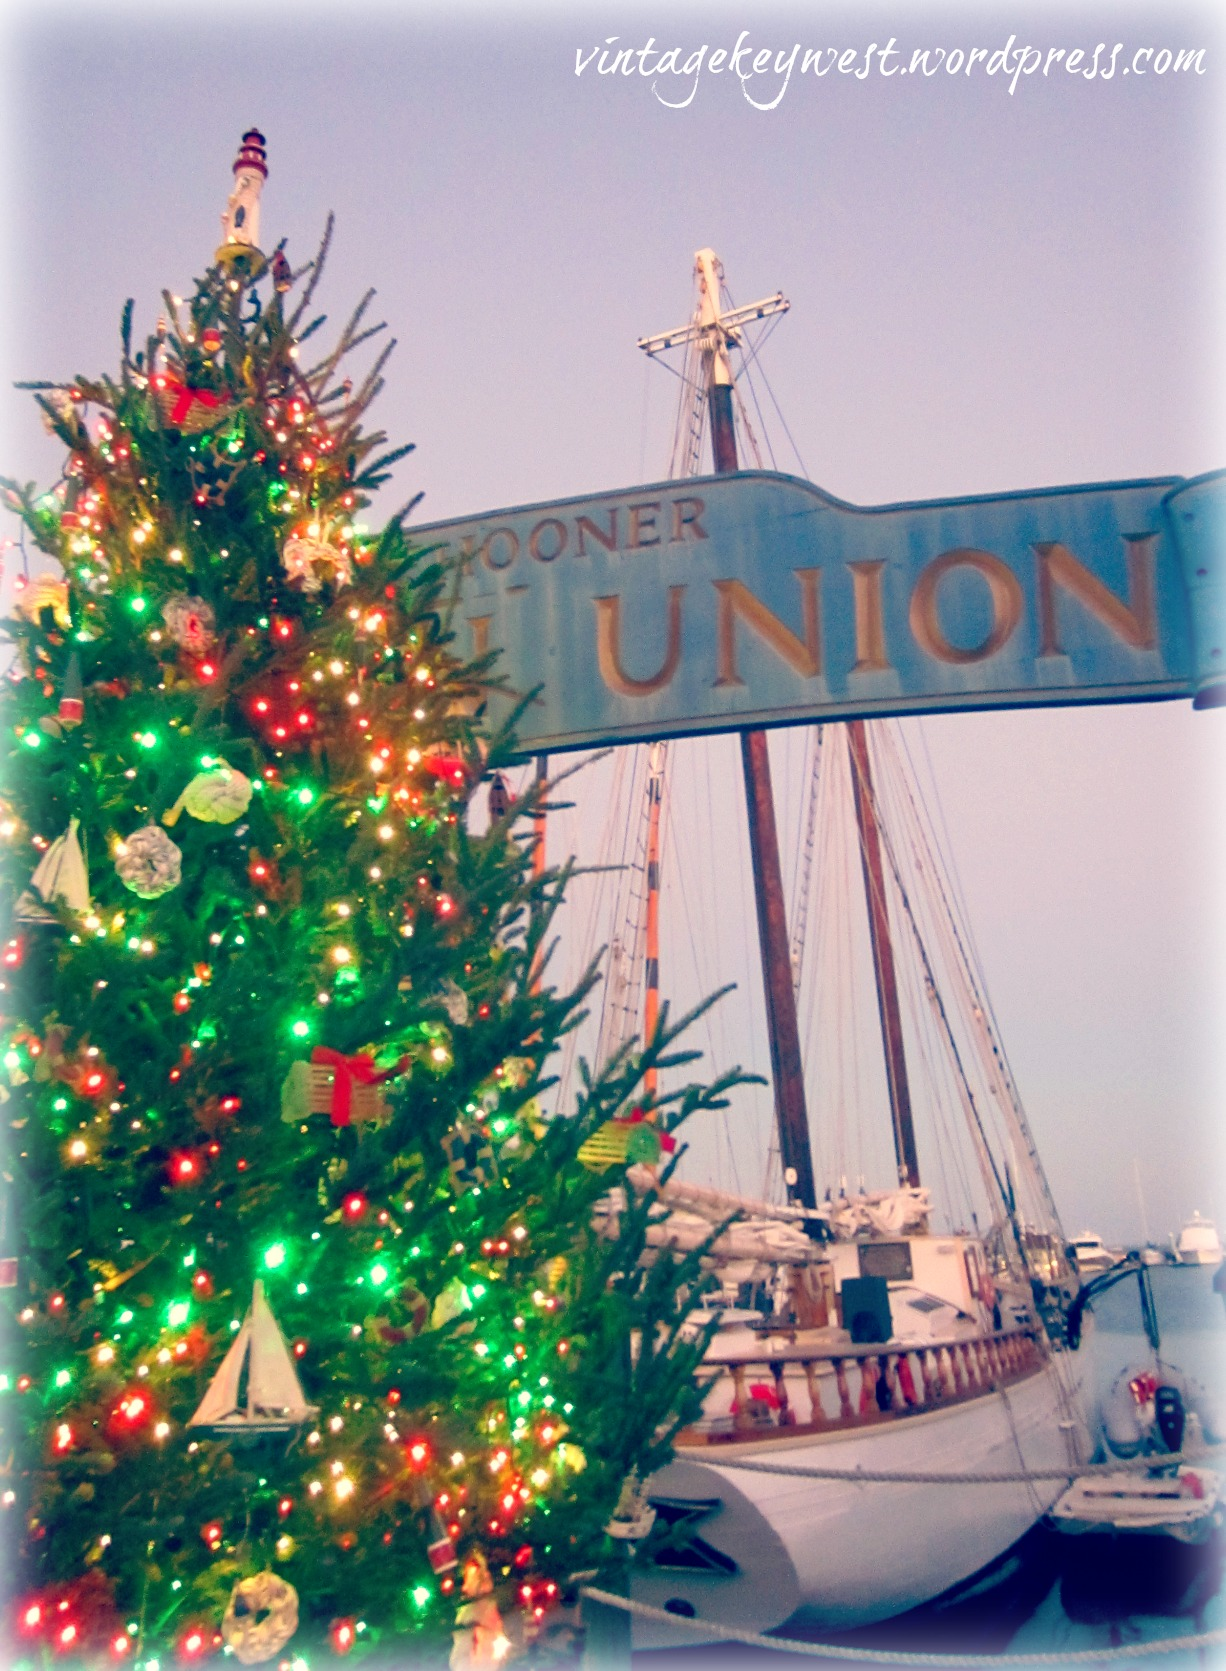 Key West Christmas, Lights in the Bight – Vintage Key West